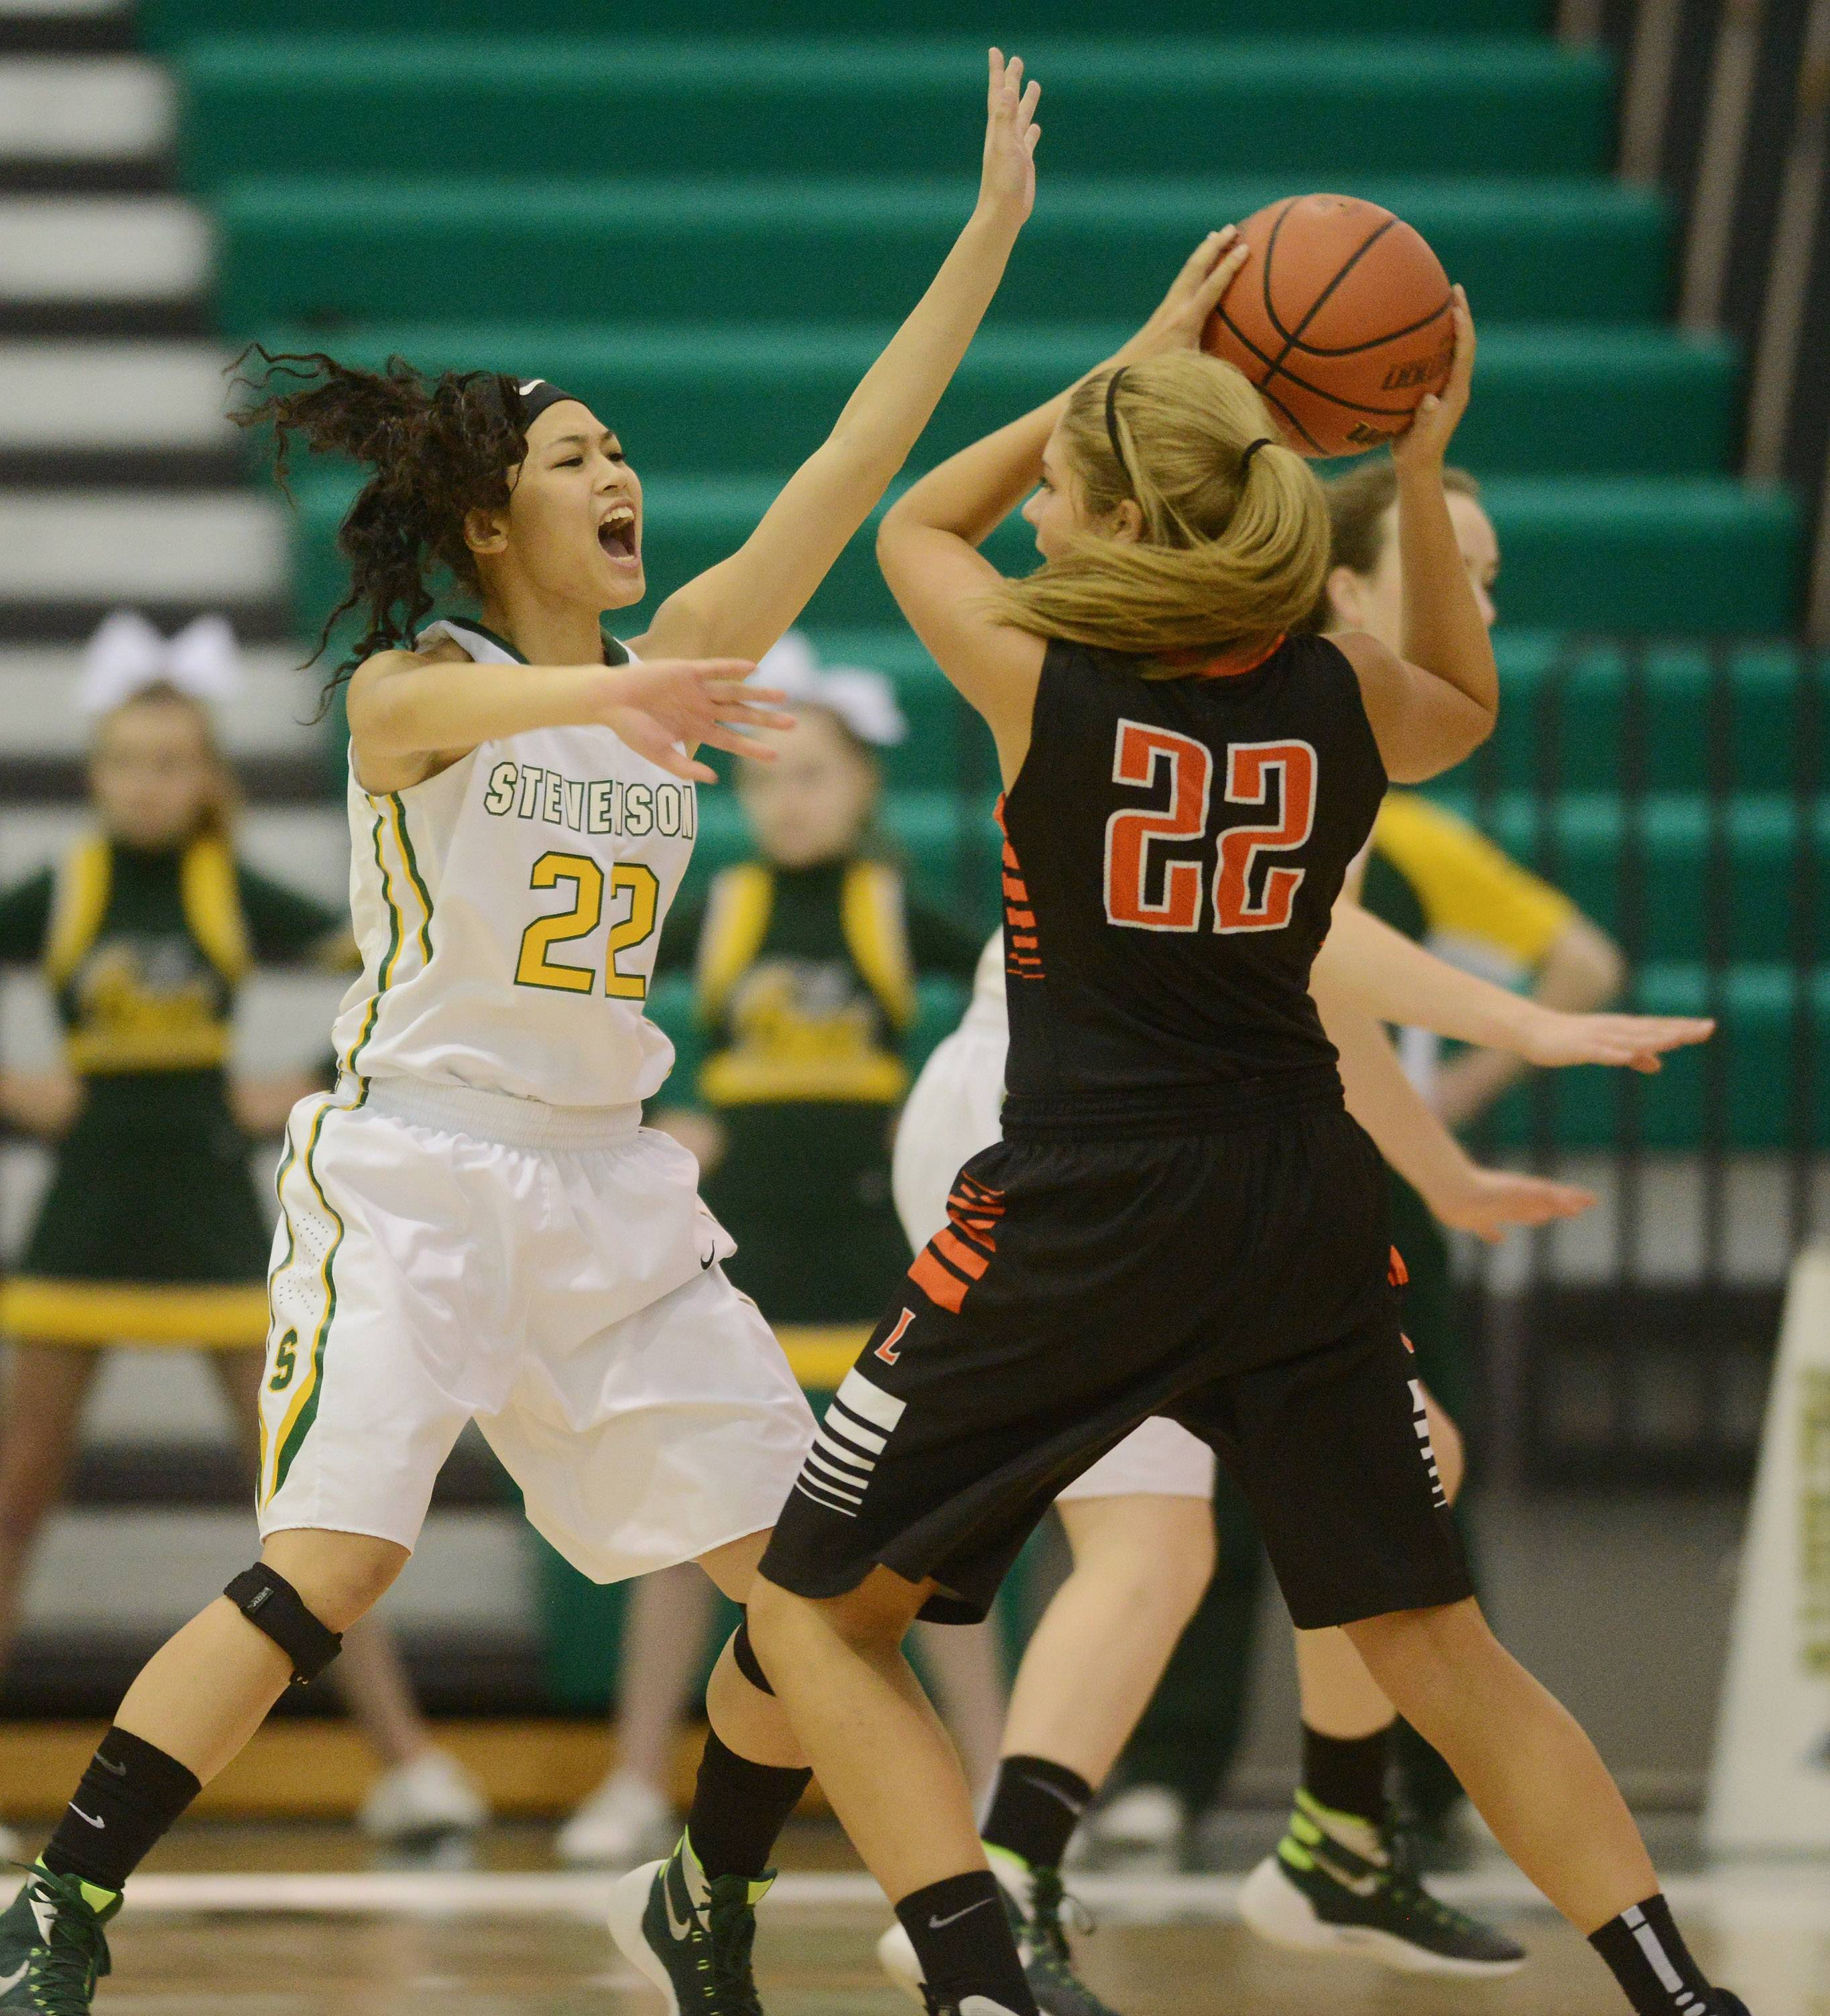 Stevenson's Janine Fajardo, left, guards Libertyville's Riley Weis during Saturday's game in Lincolnshire.